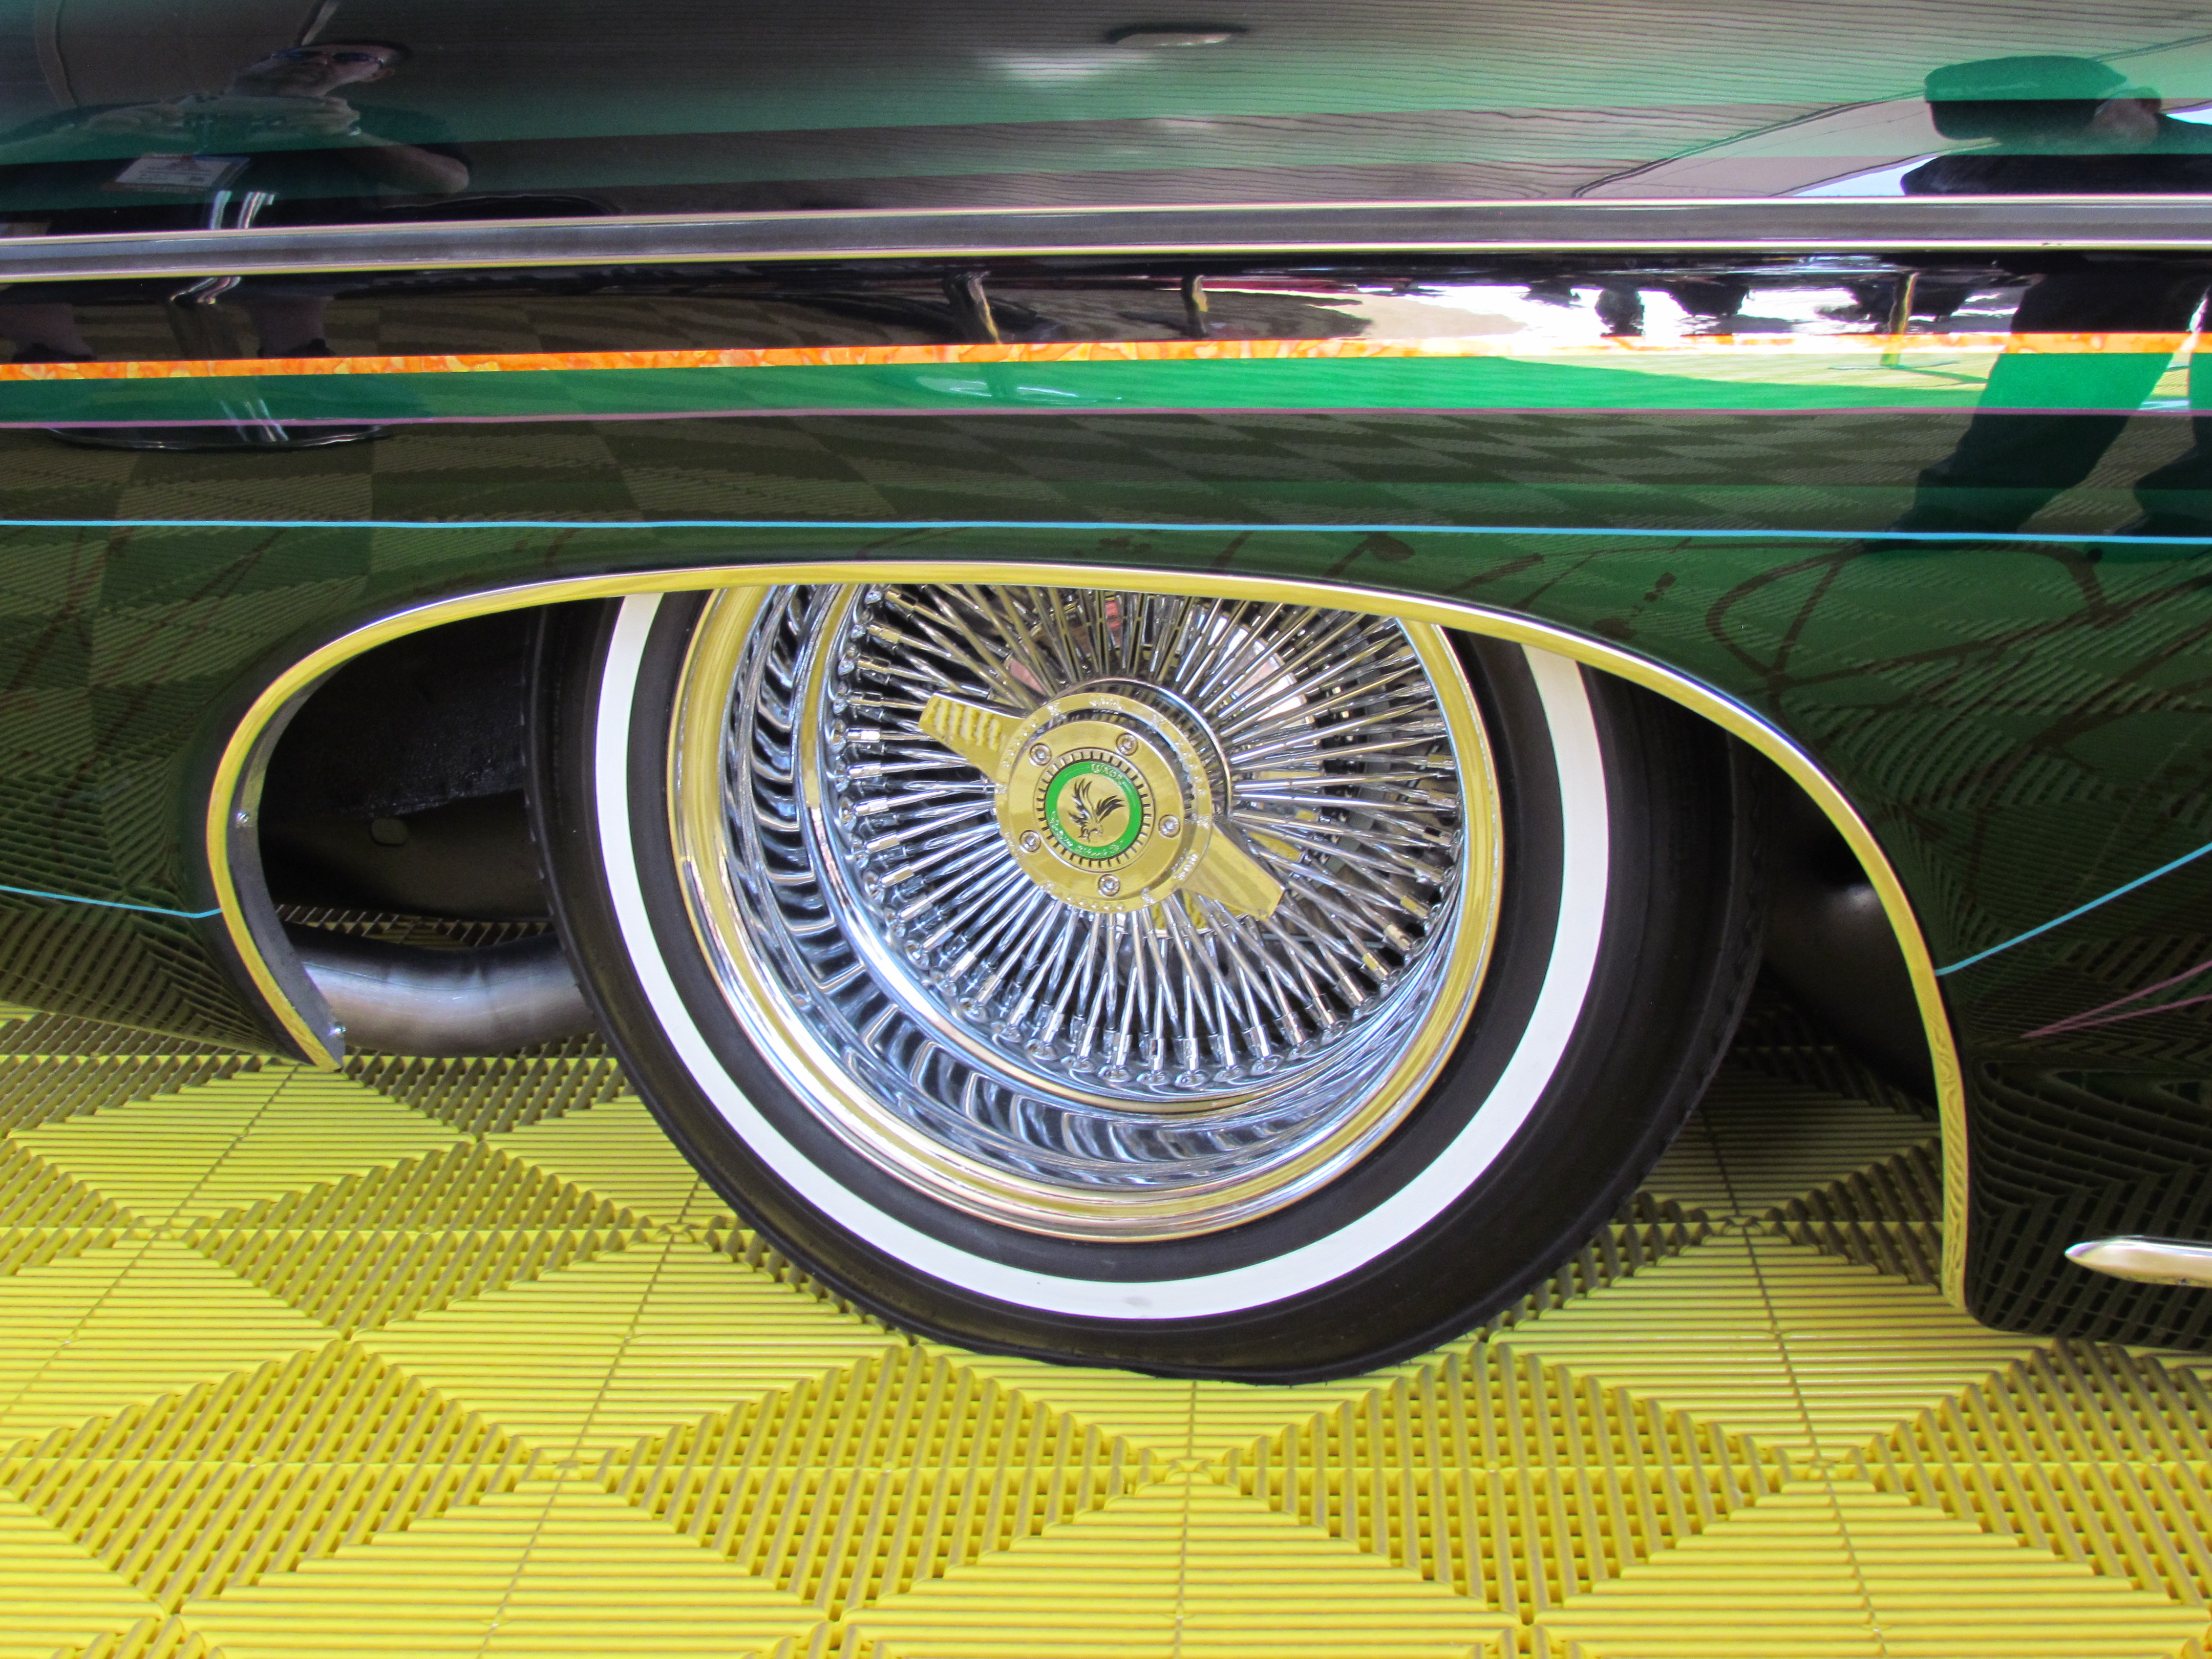 SEMA Seen, SEMA Seen: Lowrider in the limelight, ClassicCars.com Journal